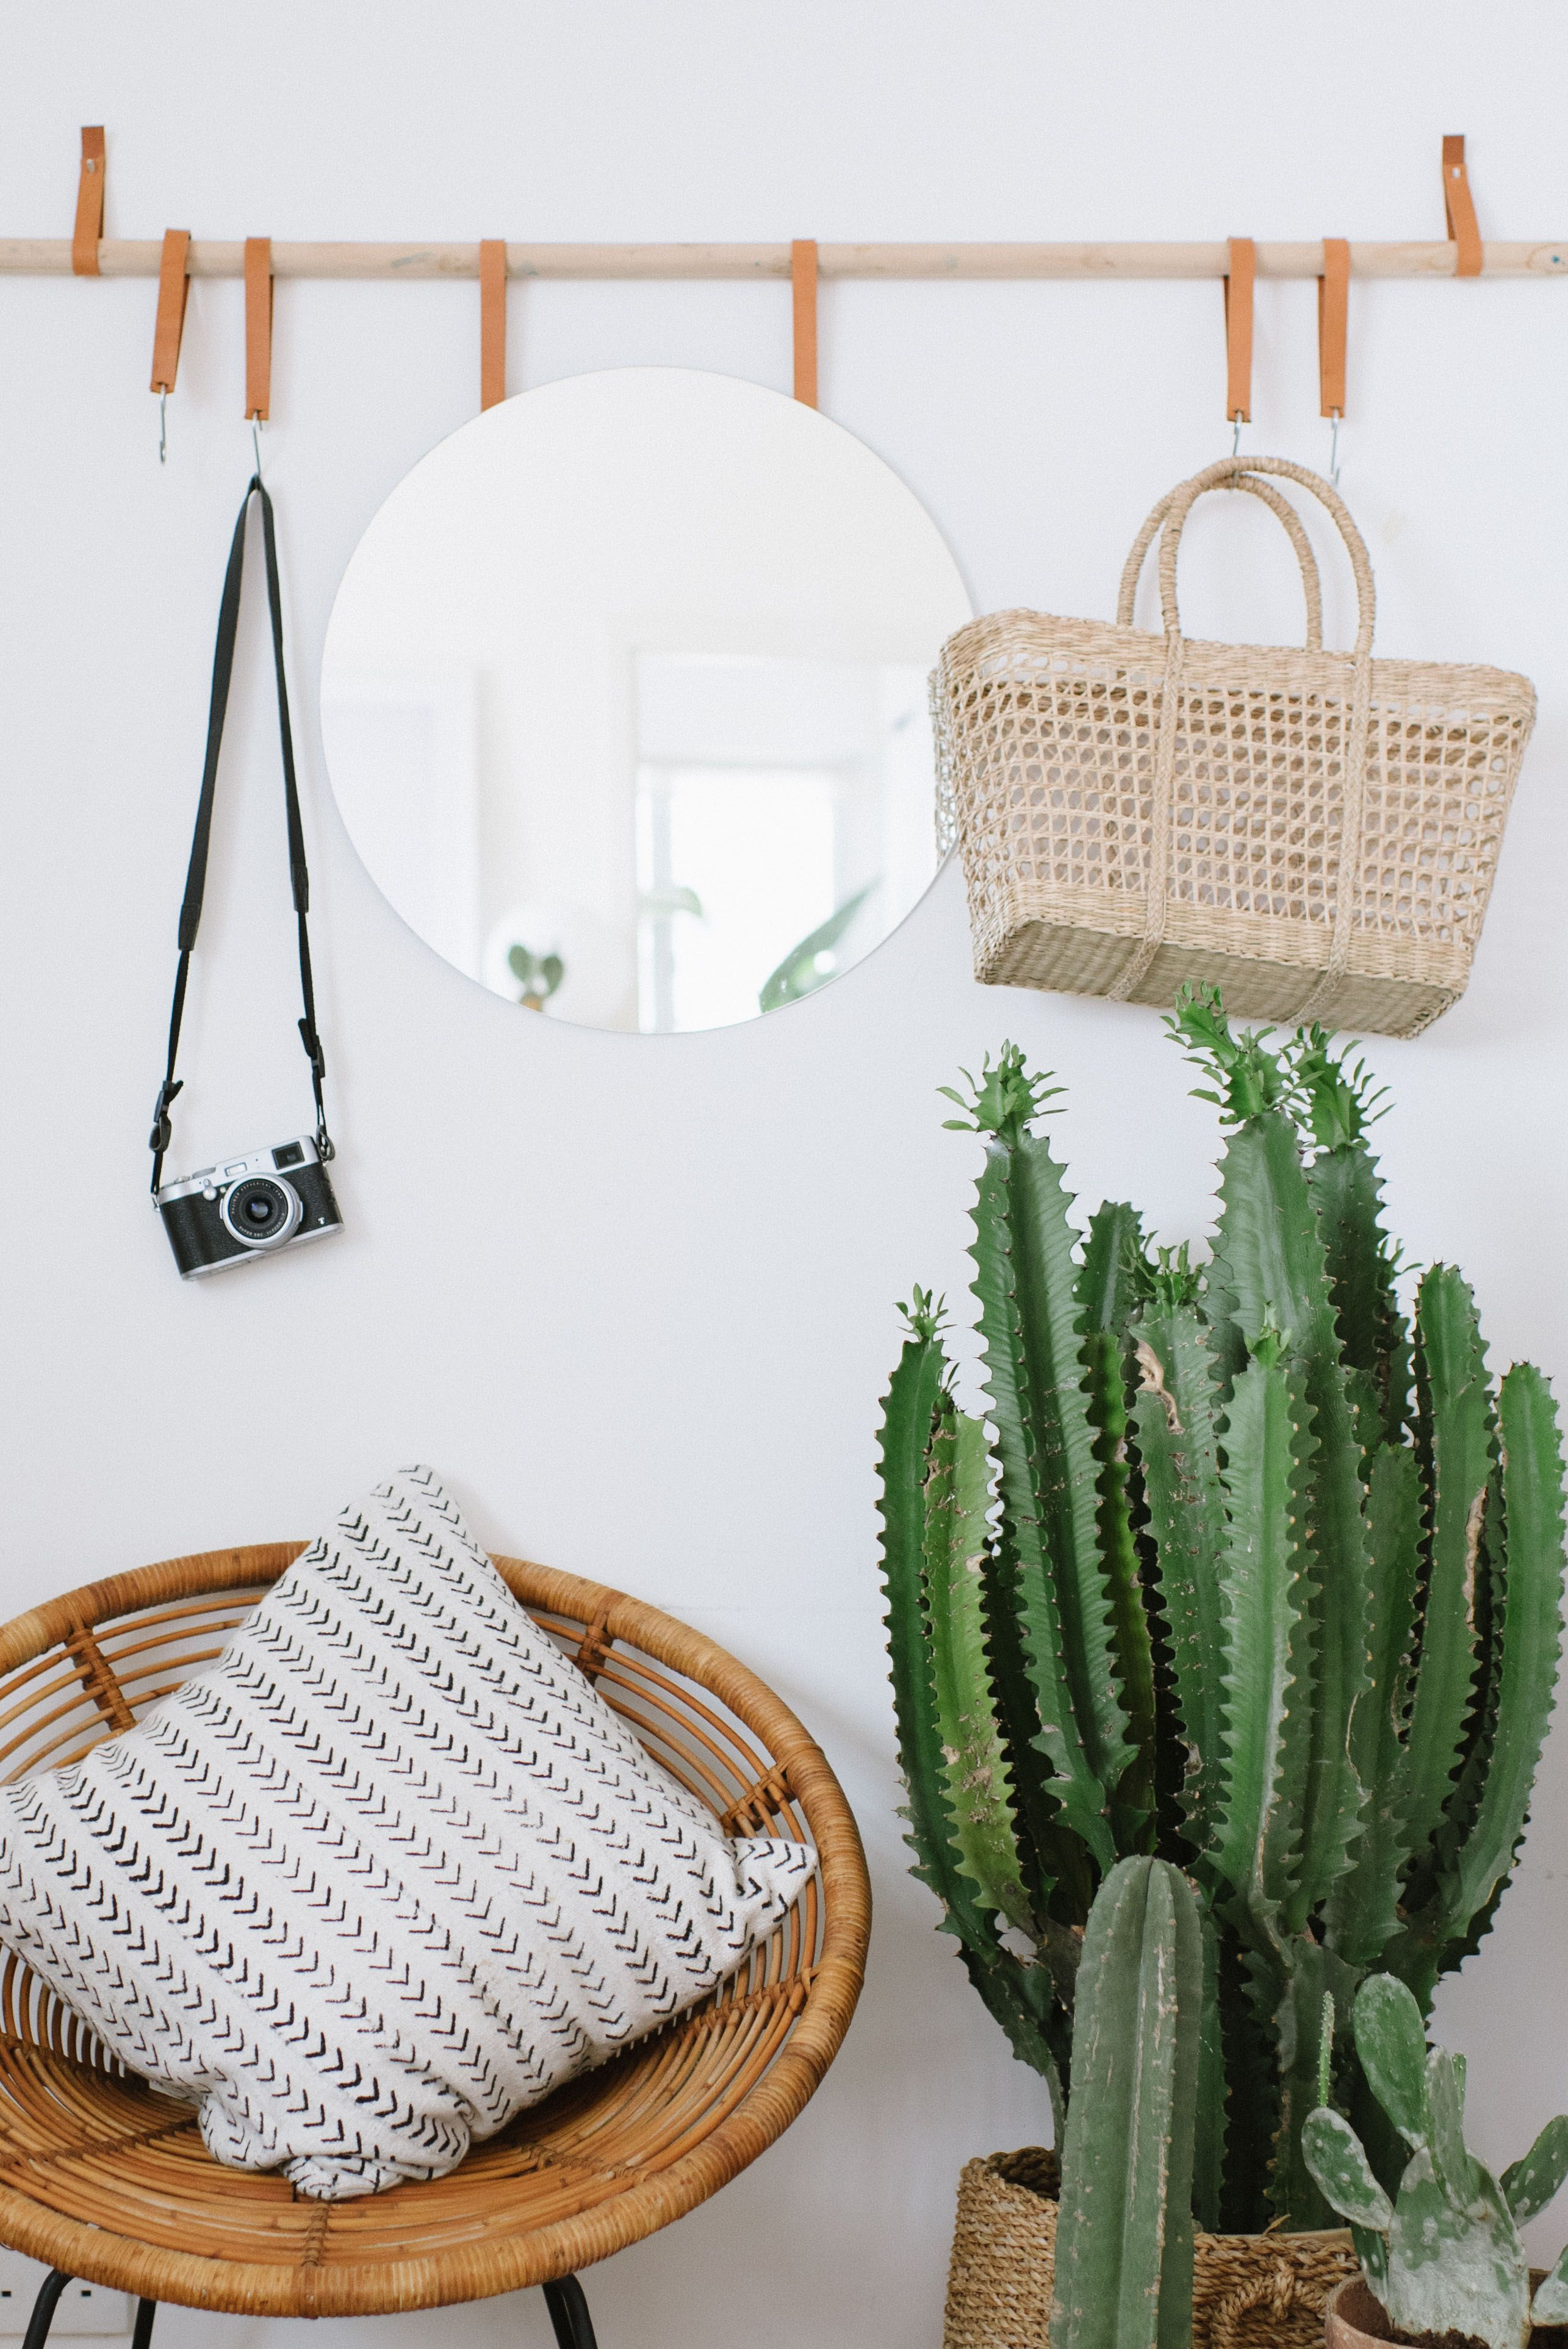 The DIY entryway organiser compact enough to fit in the tiniest of apartments